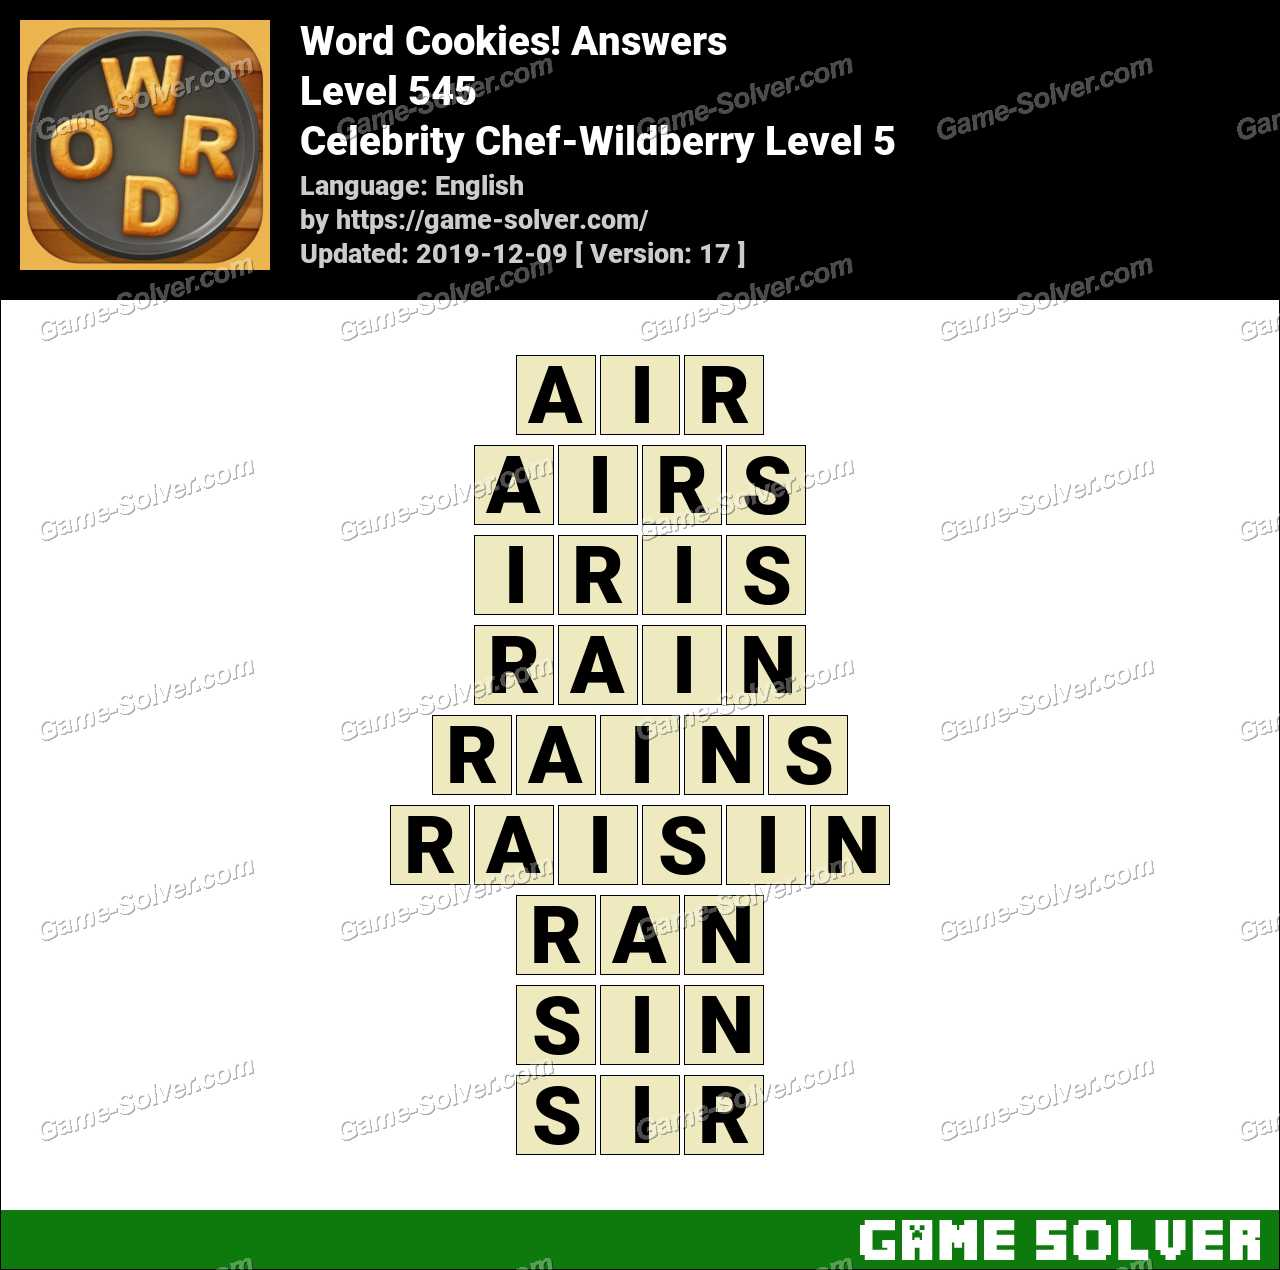 Word Cookies Celebrity Chef-Wildberry Level 5 Answers